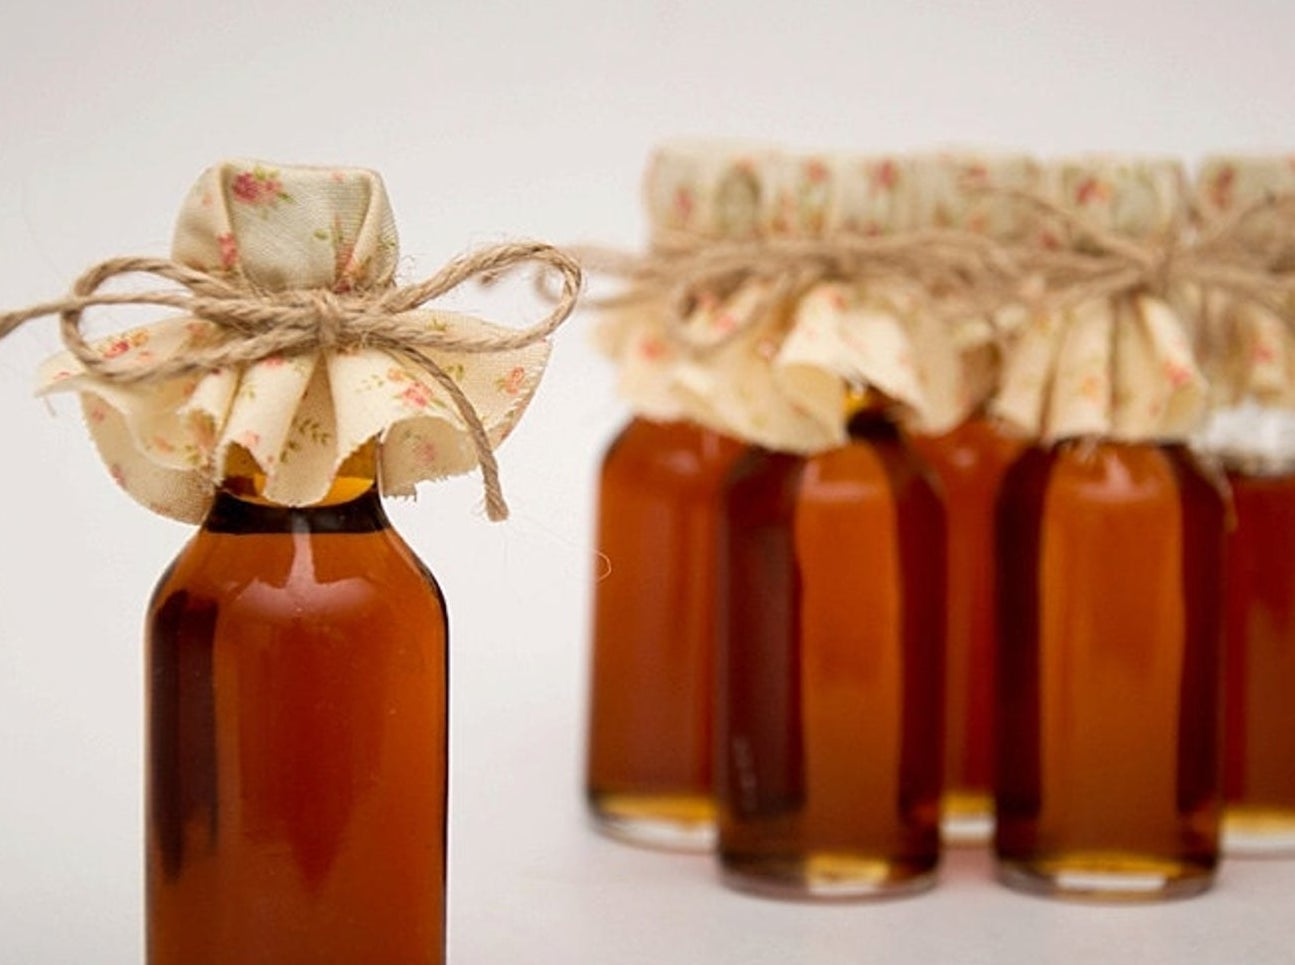 A close up of a bottle of maple syrup with a piece of fabric on the lid tied with twine